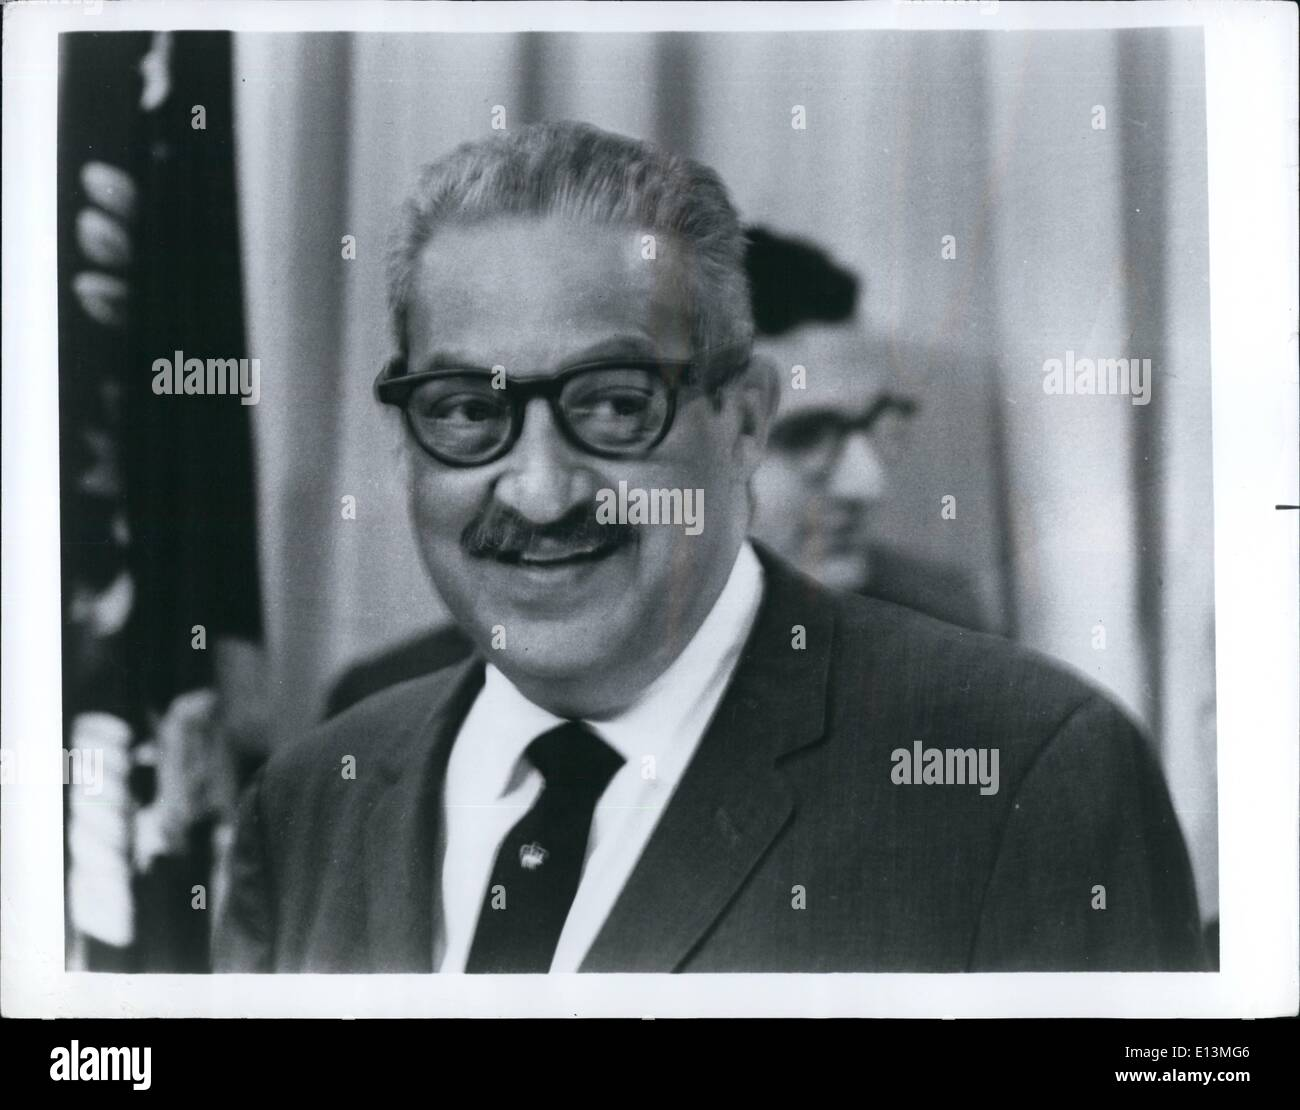 Mar. 22, 2012 - An Historic First : Thurgood Marshall, newest appointee to Supreme Court, is the very personification of the judicial oath ''to administer justice without respect to persons' - Stock Image